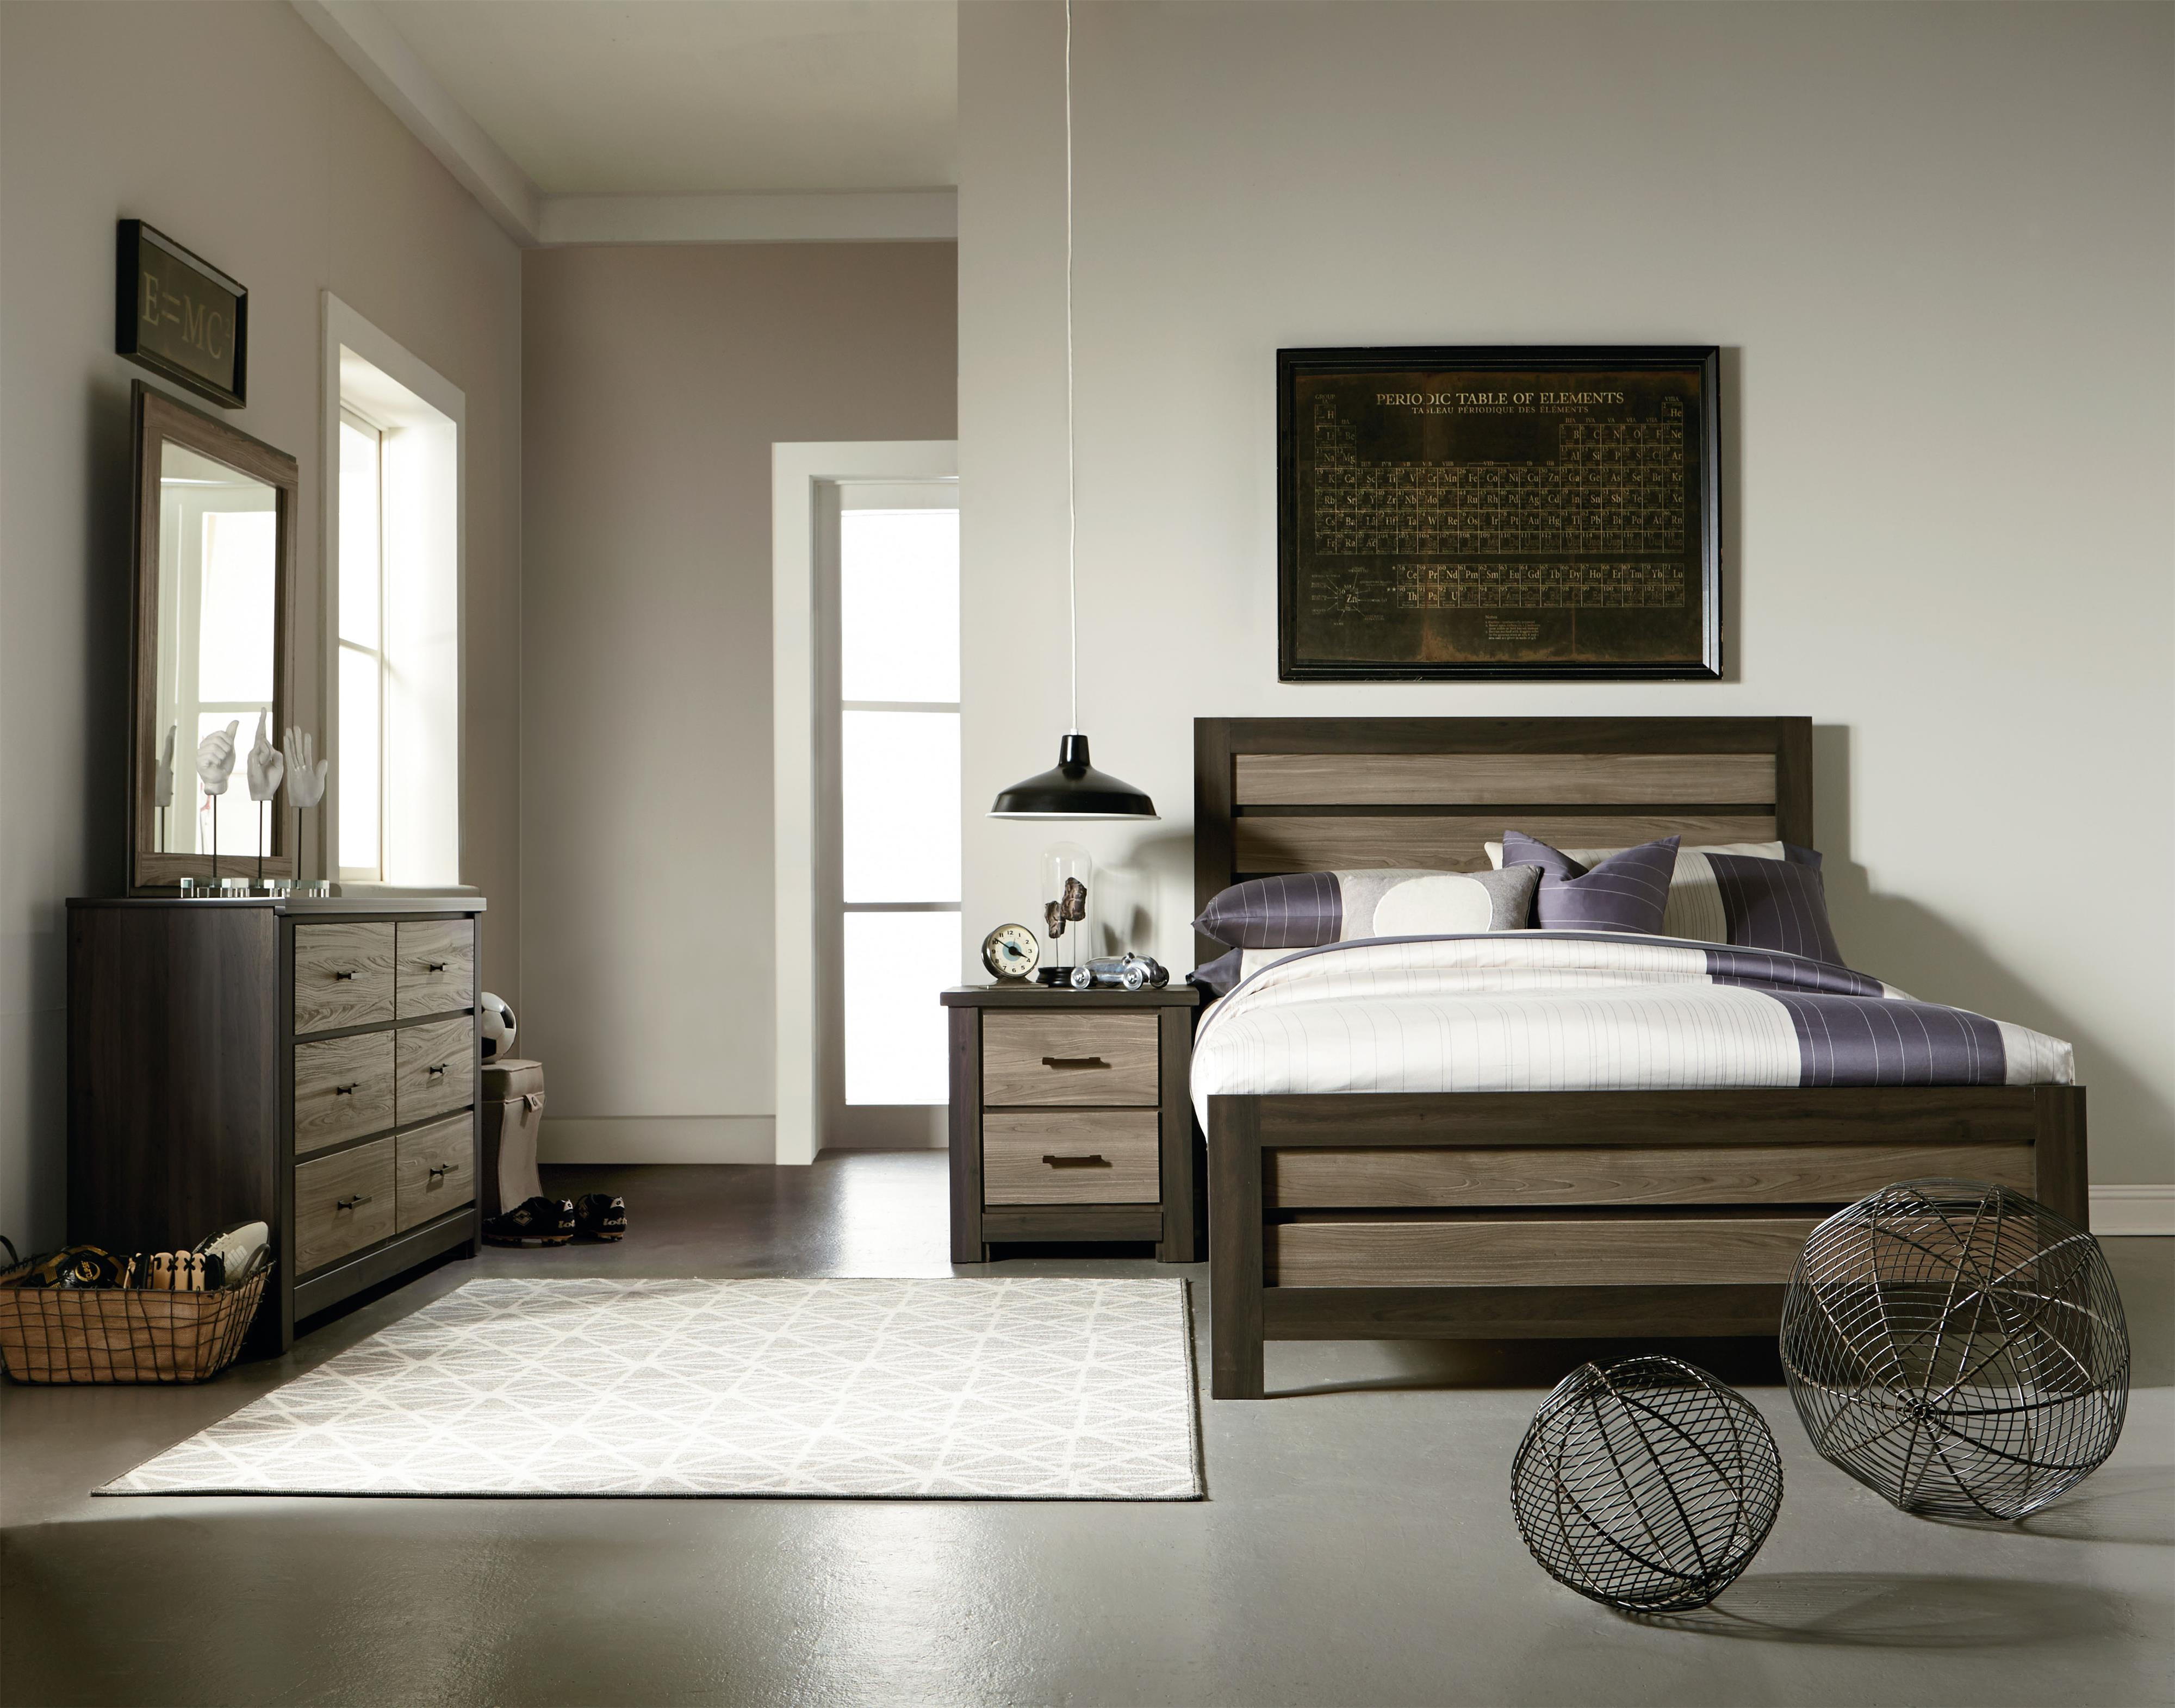 Standard Furniture Oakland Twin Bedroom Group - Item Number: 69700 T Bedroom Group 4